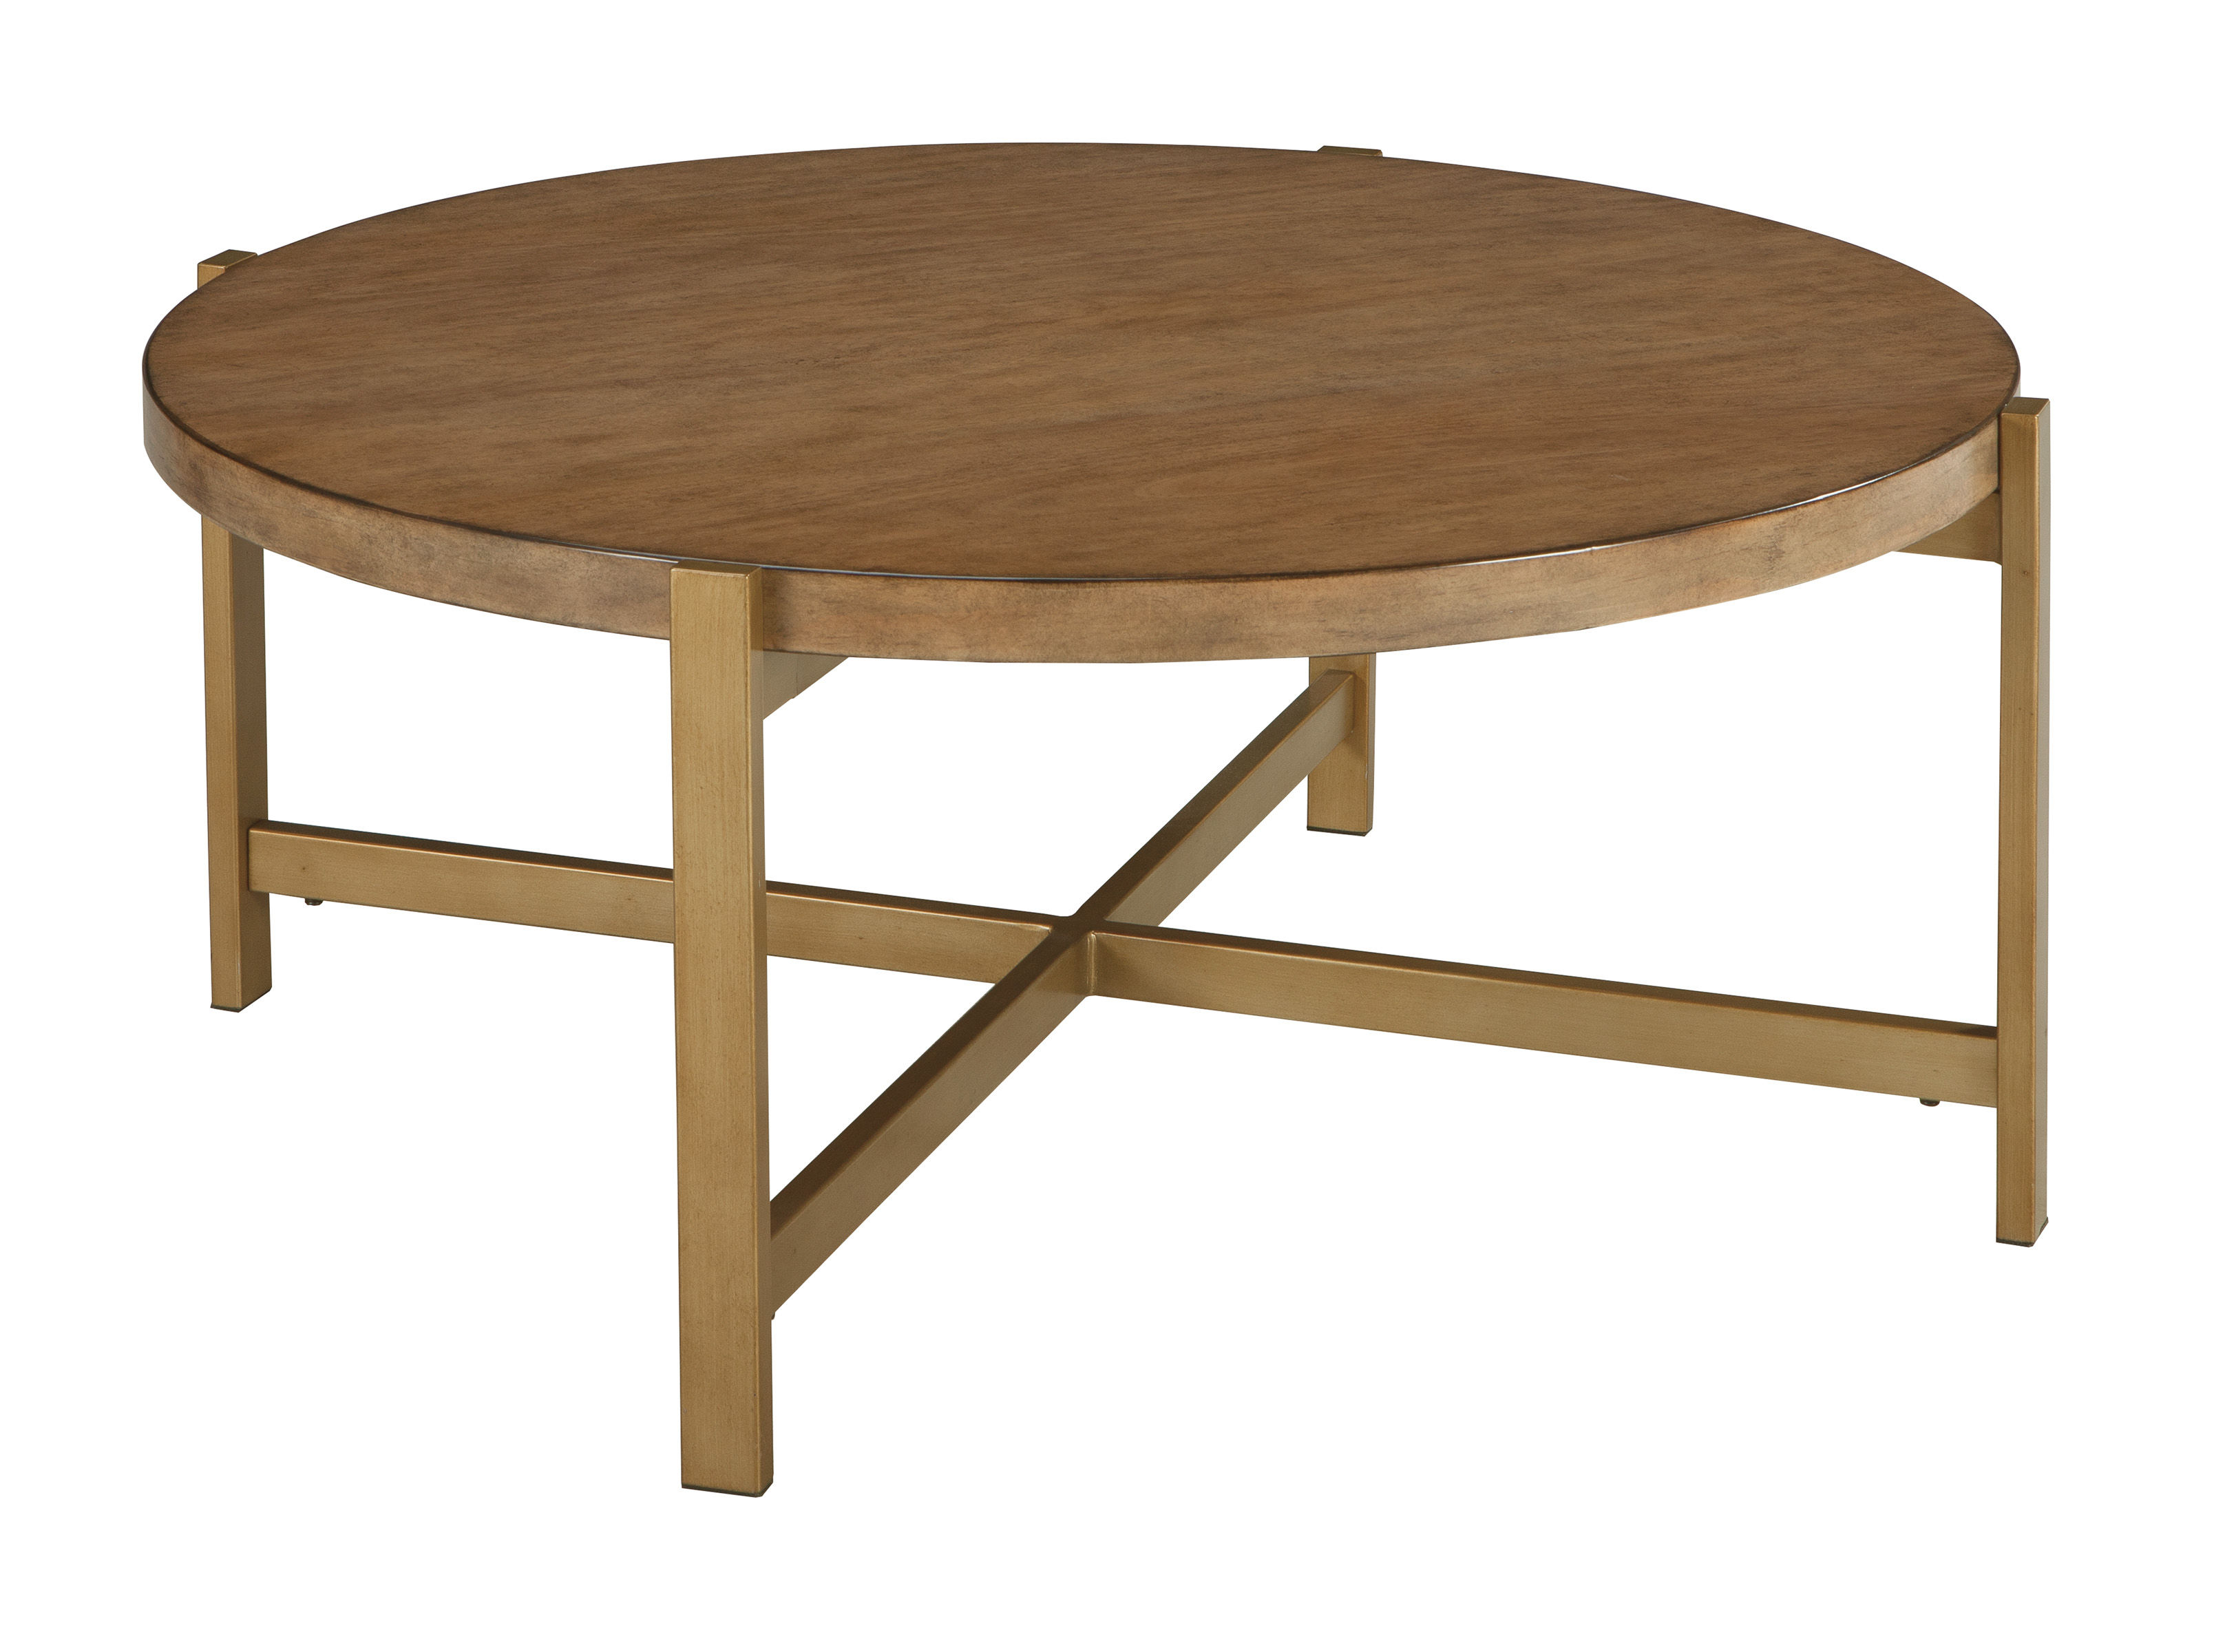 Pleasing Ashley Furniture Franston Light Brown Round Cocktail Table Interior Design Ideas Gentotryabchikinfo